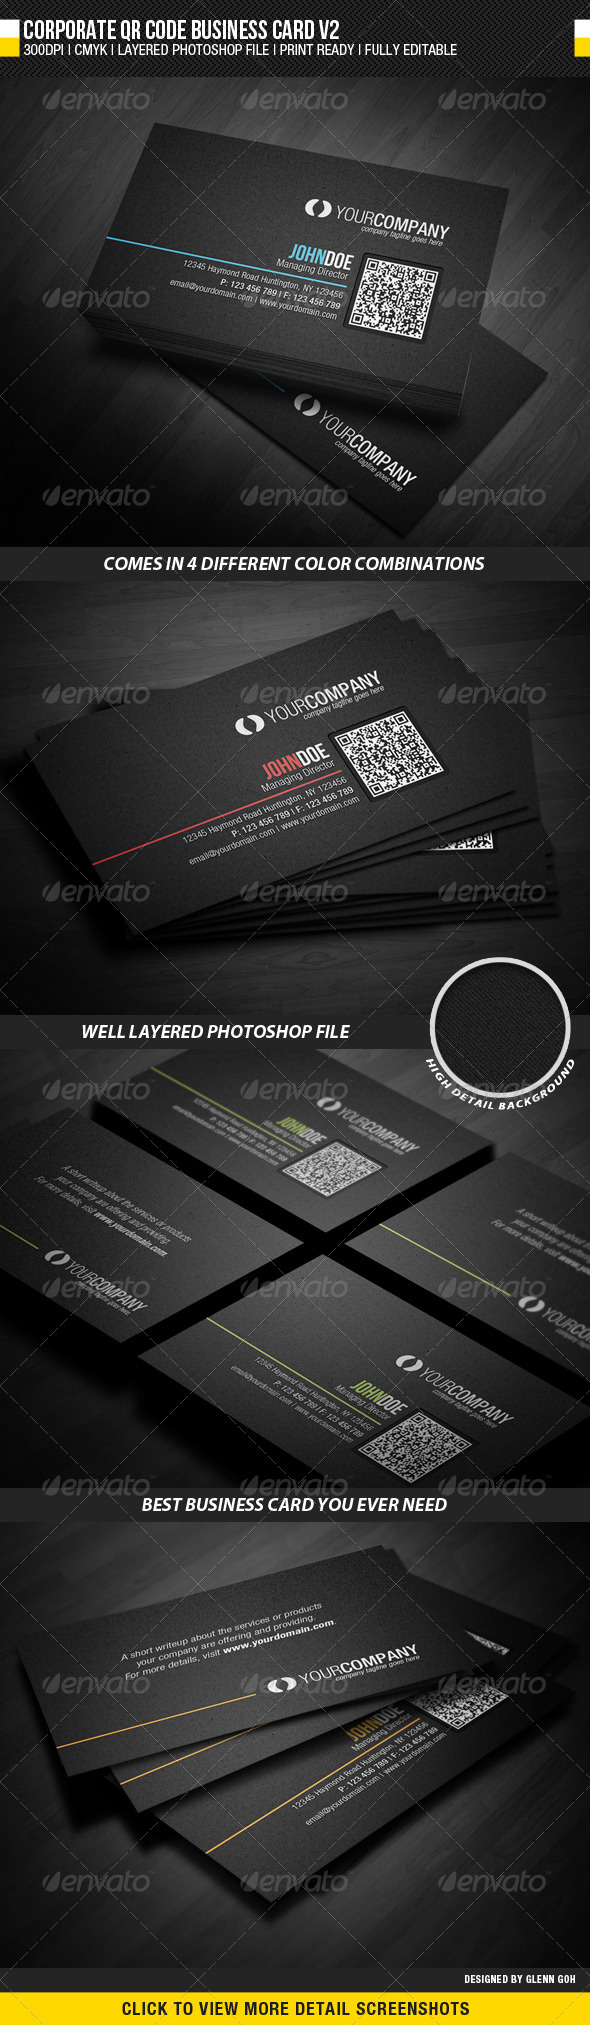 Corporate QR Code Business Card V2 - Corporate Business Cards